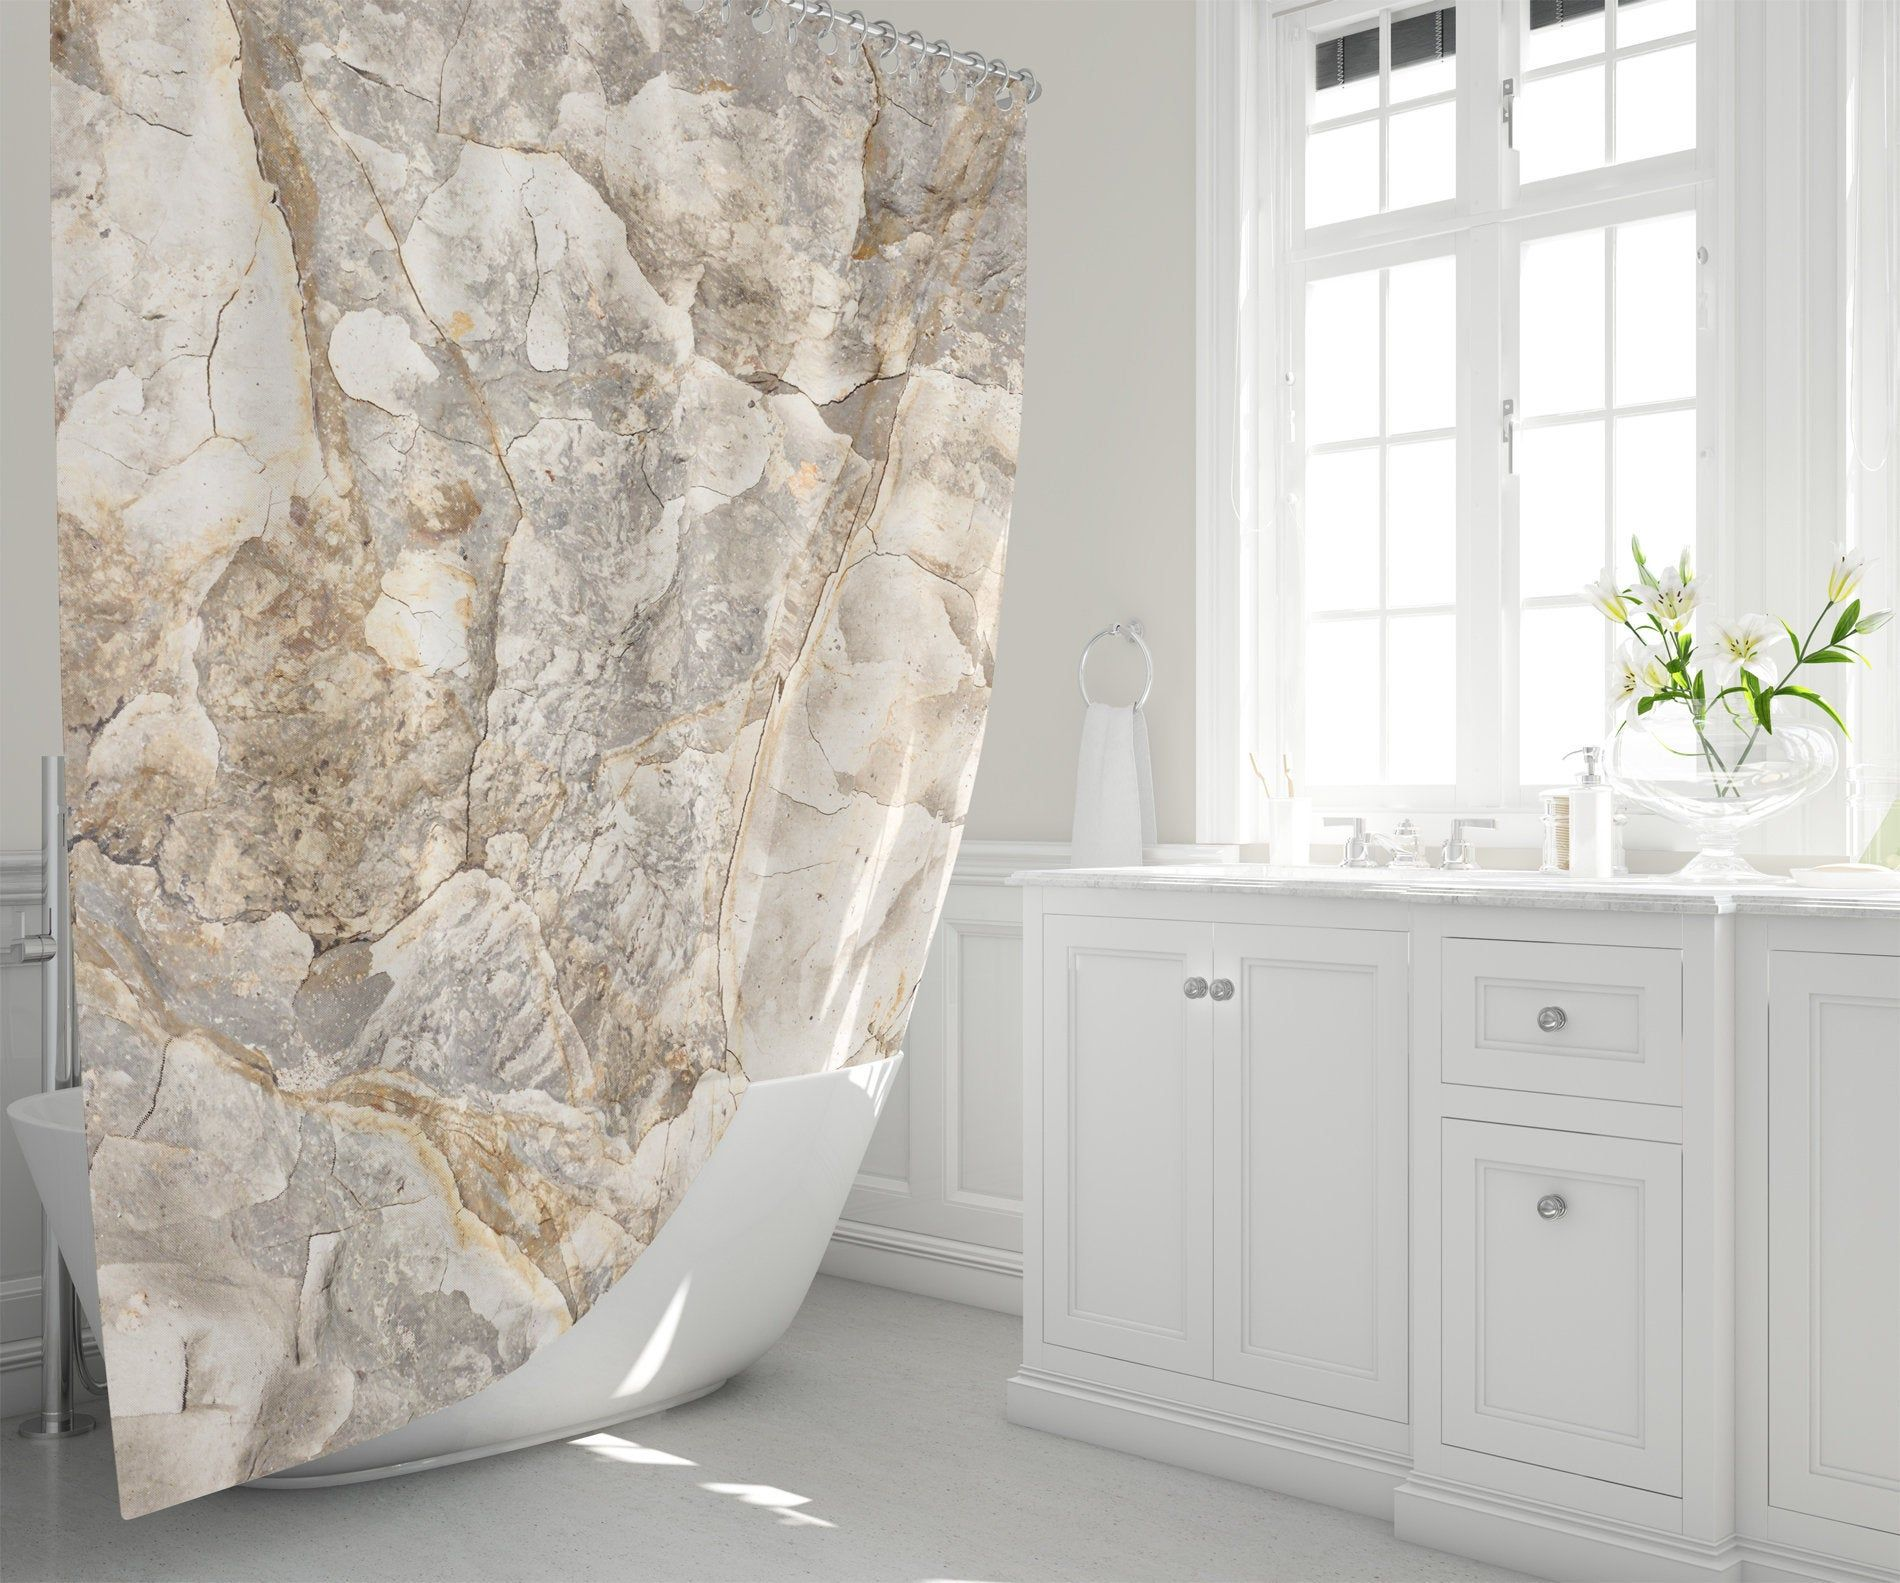 Natural Abstract Shower Curtain Marbled Clay In Warm Neutral